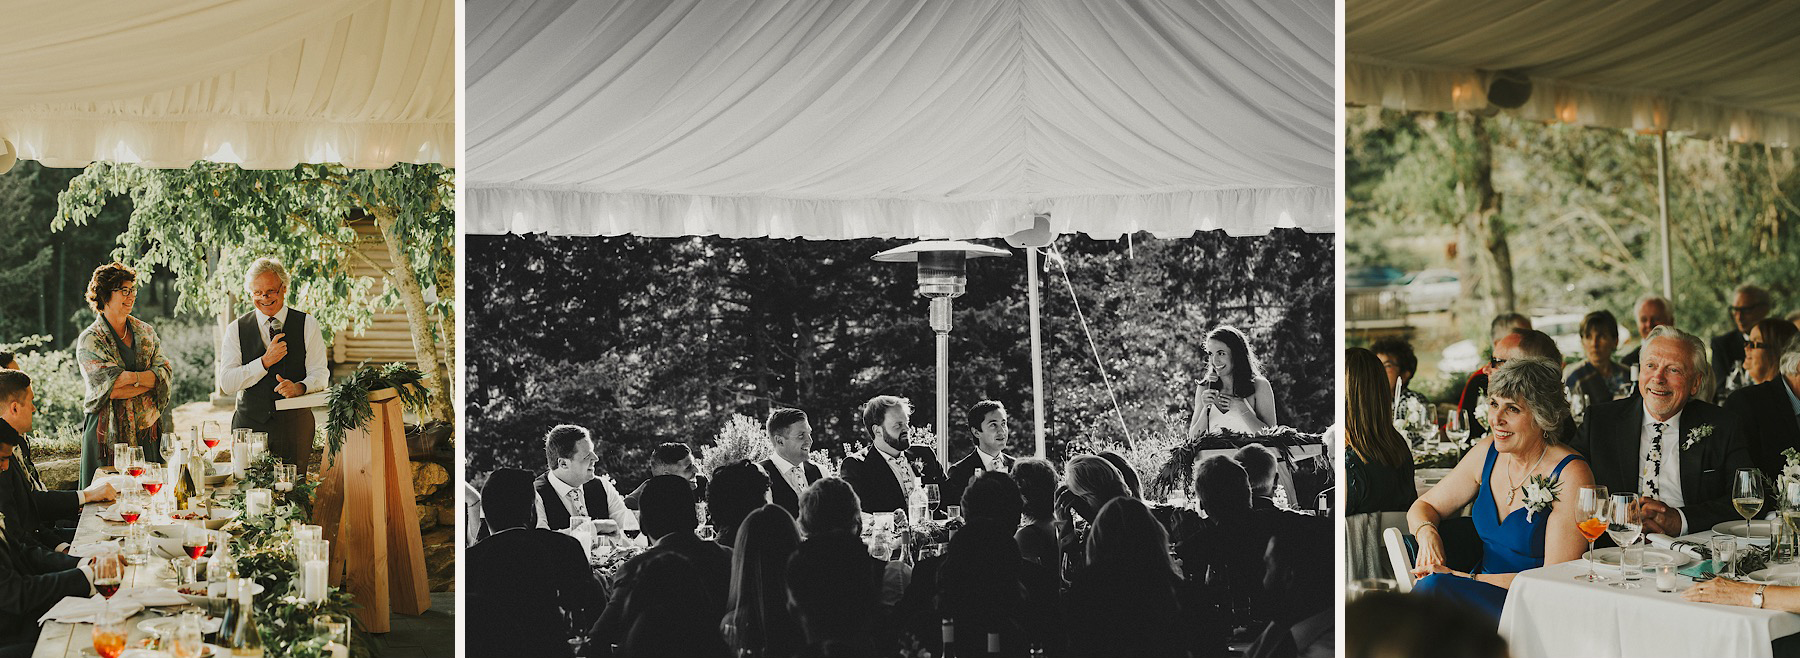 bodega ridge outdoor wedding reception